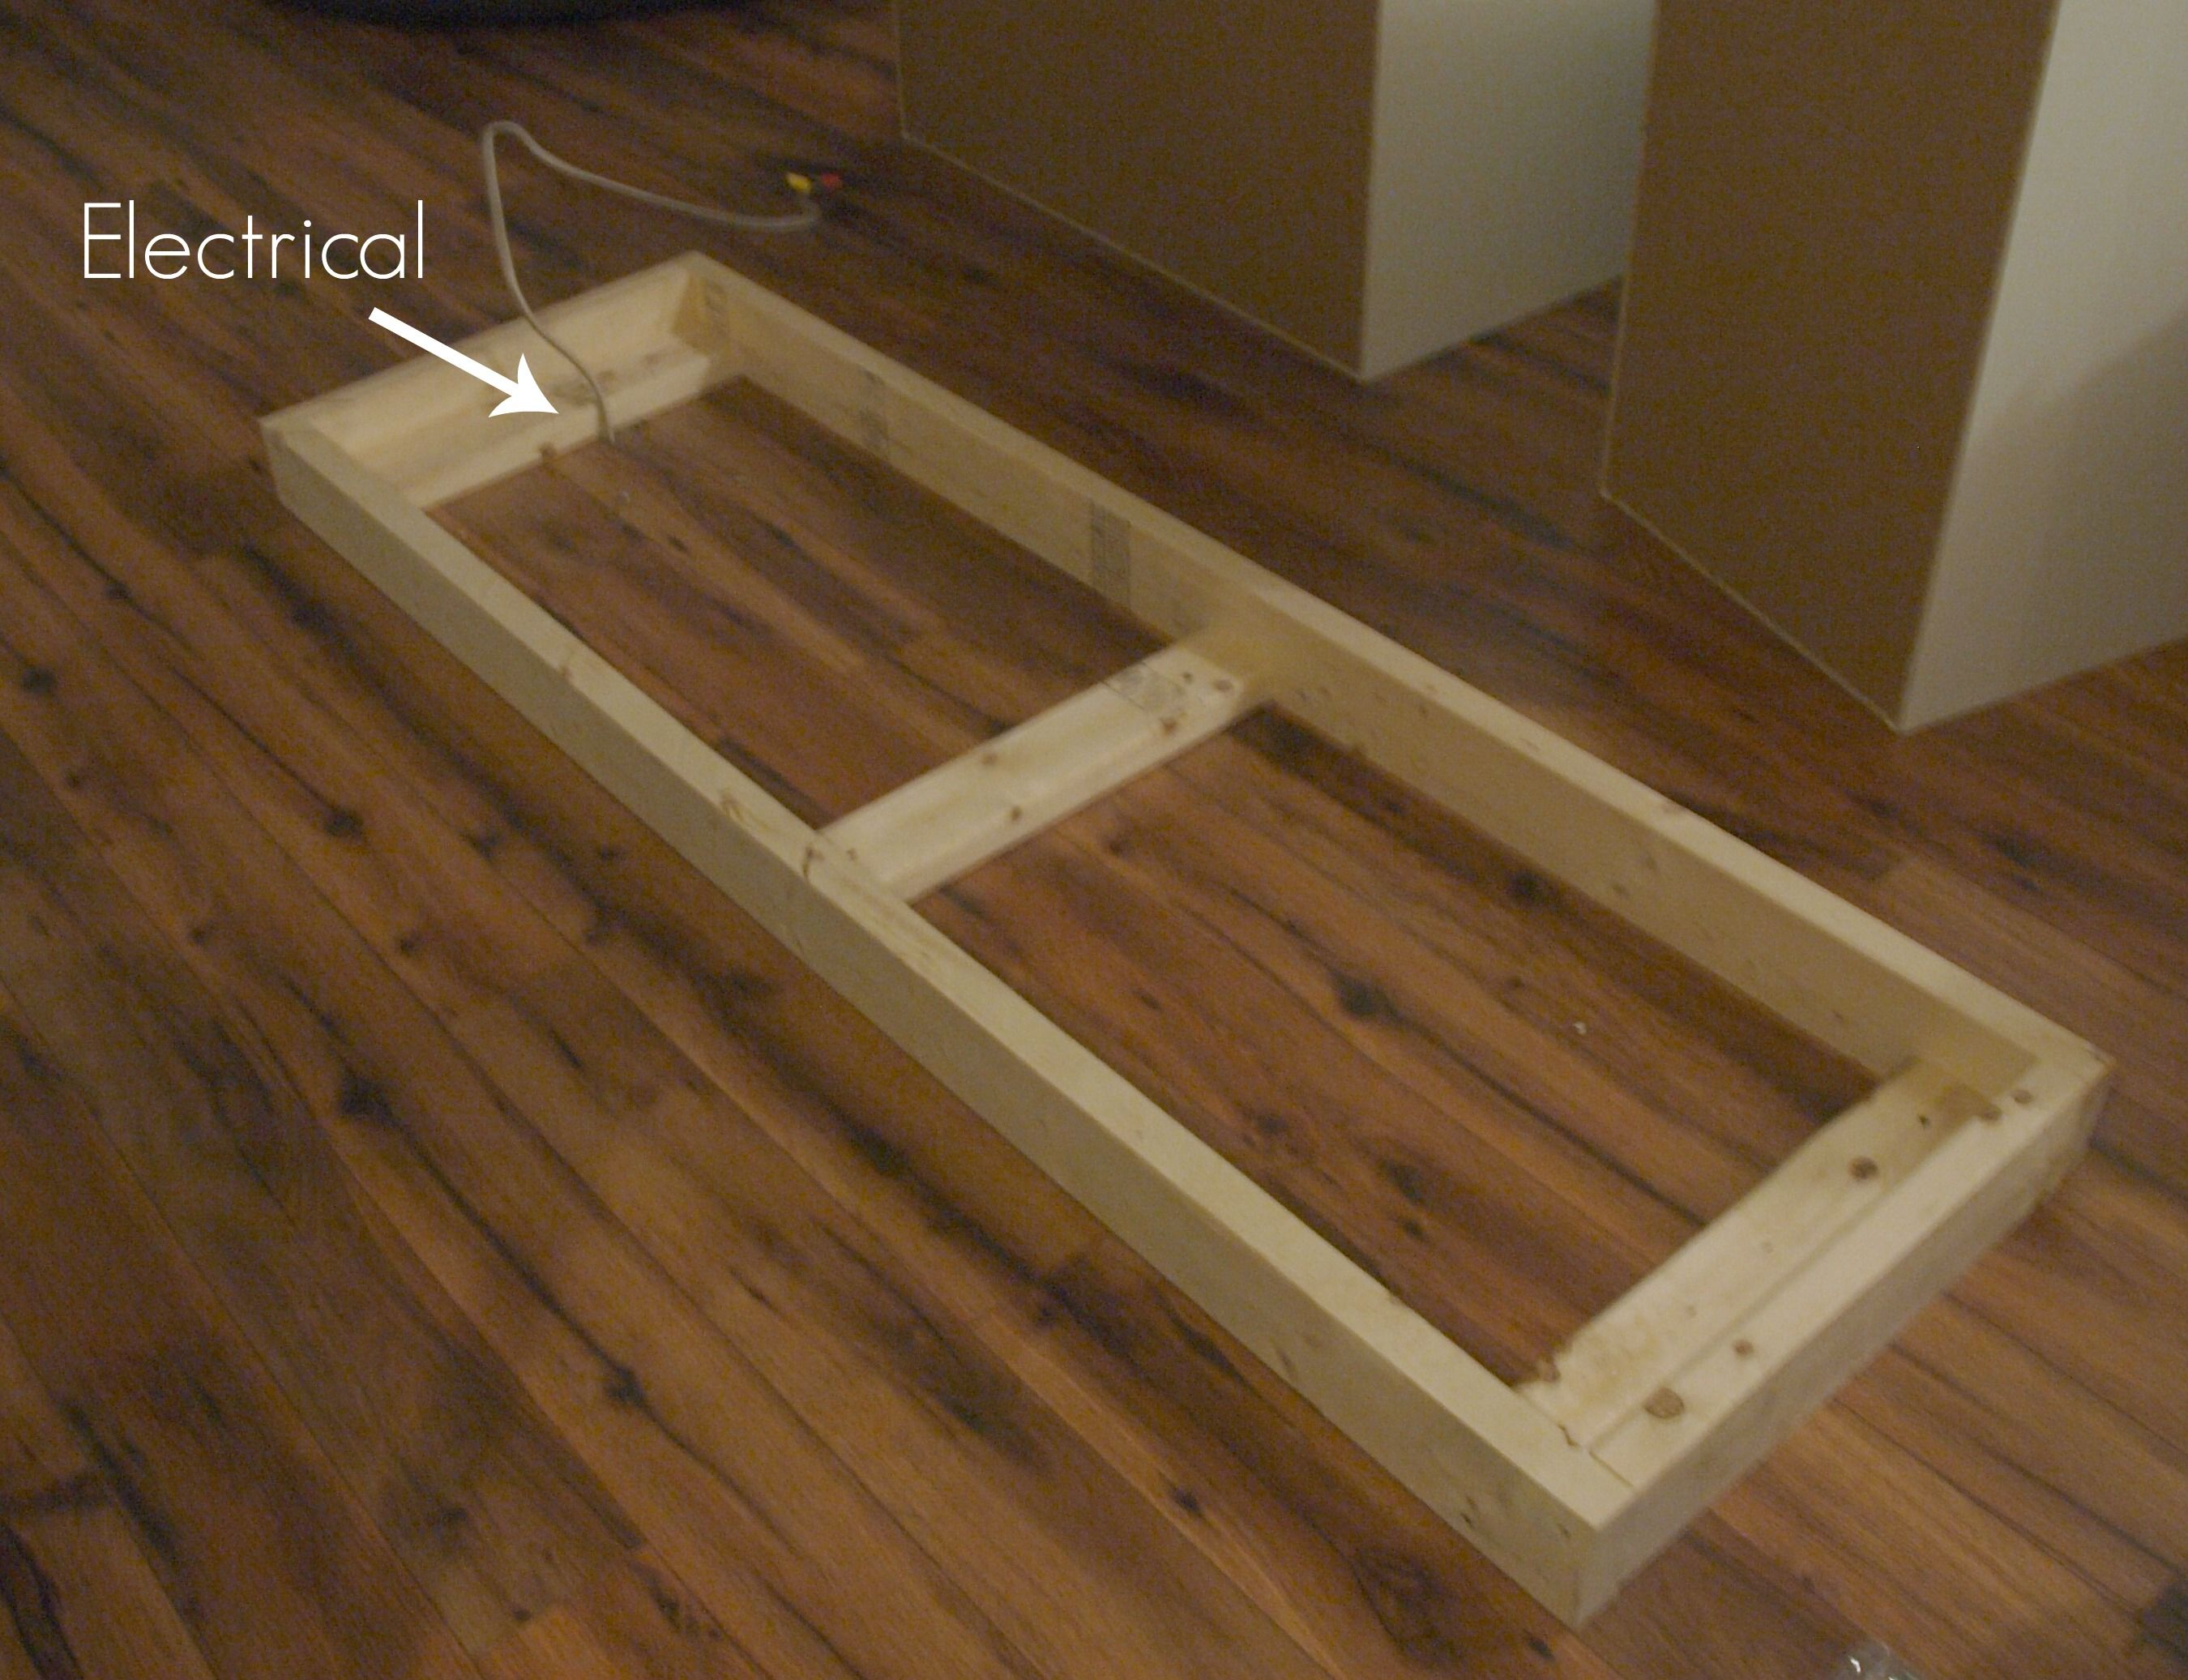 How To Build A Kitchen Island With Base Cabinets: Building A Custom  Microwave Cabinet Simply